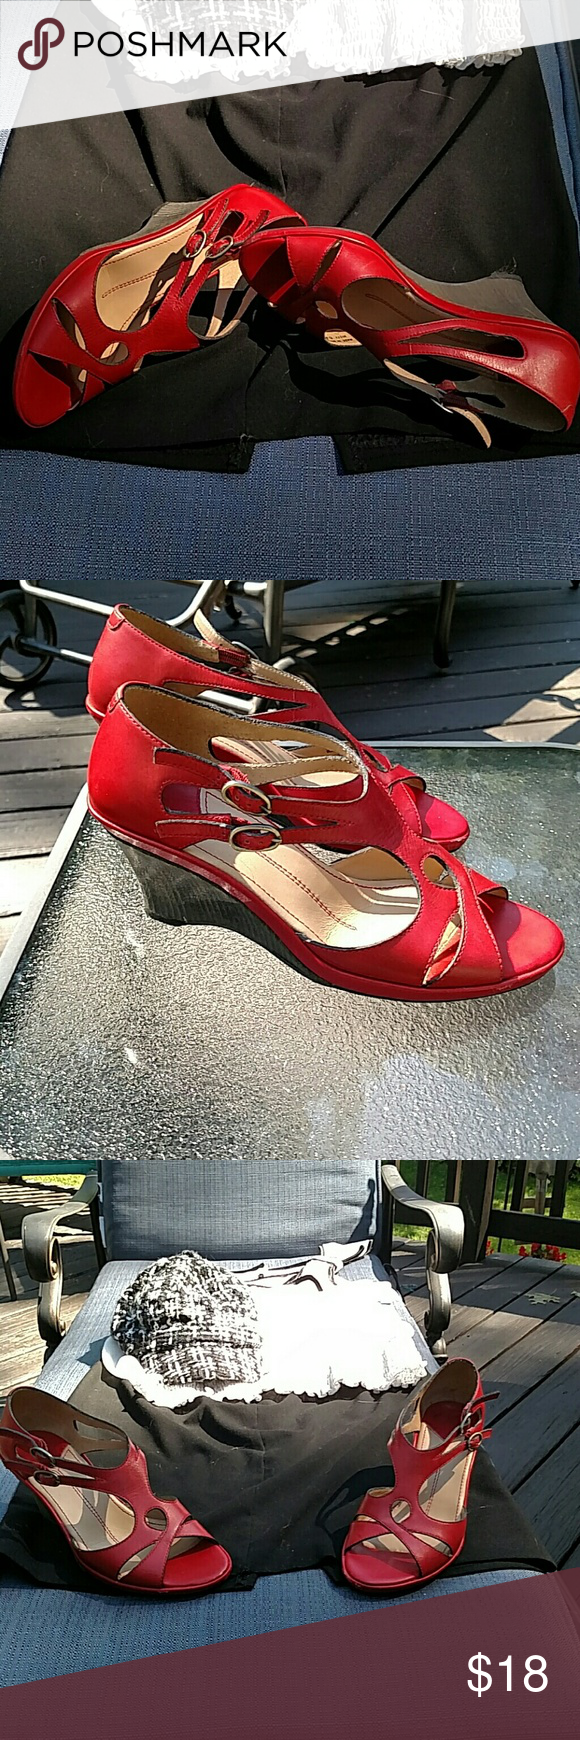 *BOGO* Sexy red wedges In good used condition. These sexy little low wedges with two side buckles will make any outfit POP.... all my items are buy one/get one of equal or lesser value FREE Oh! Shoes Wedges